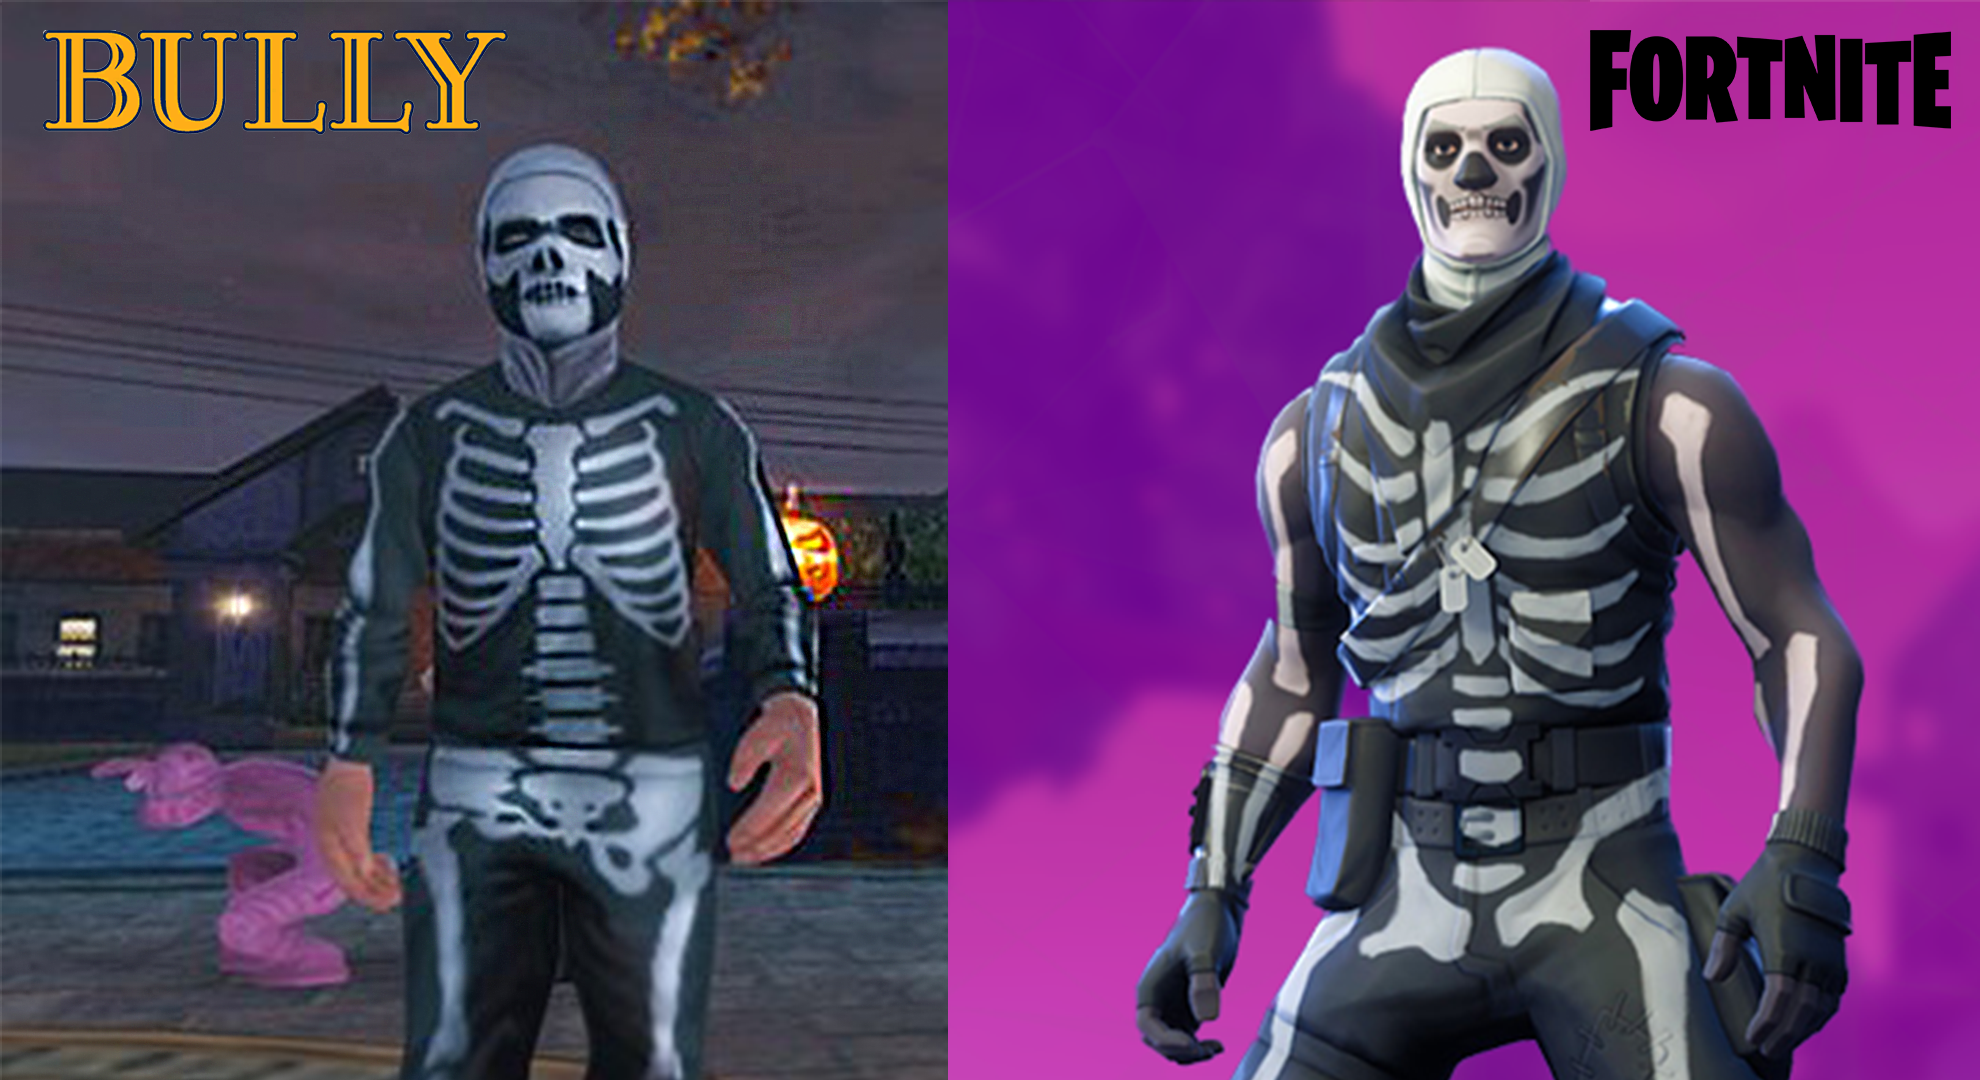 Skull trooper png real life. Who wore it better